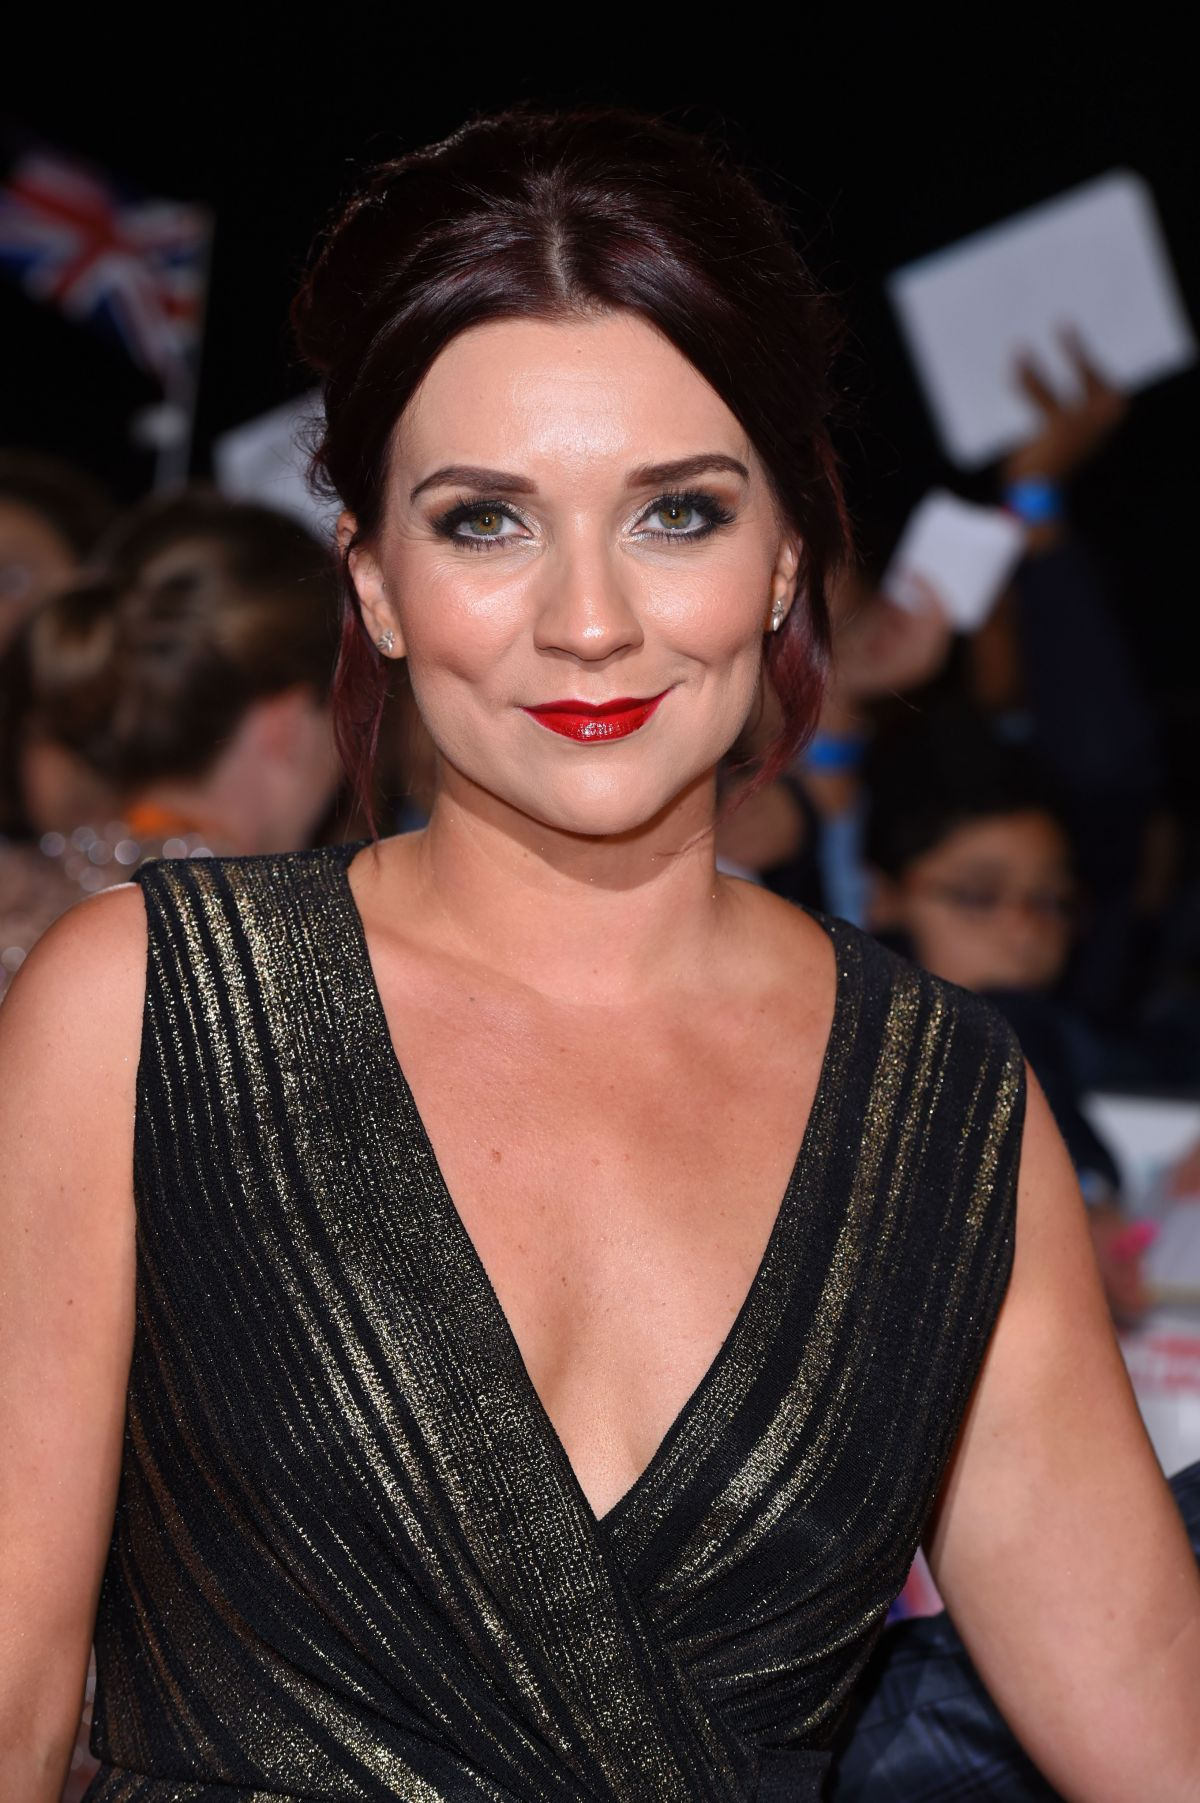 Candice Brown nudes (21 pics) Hot, Instagram, see through